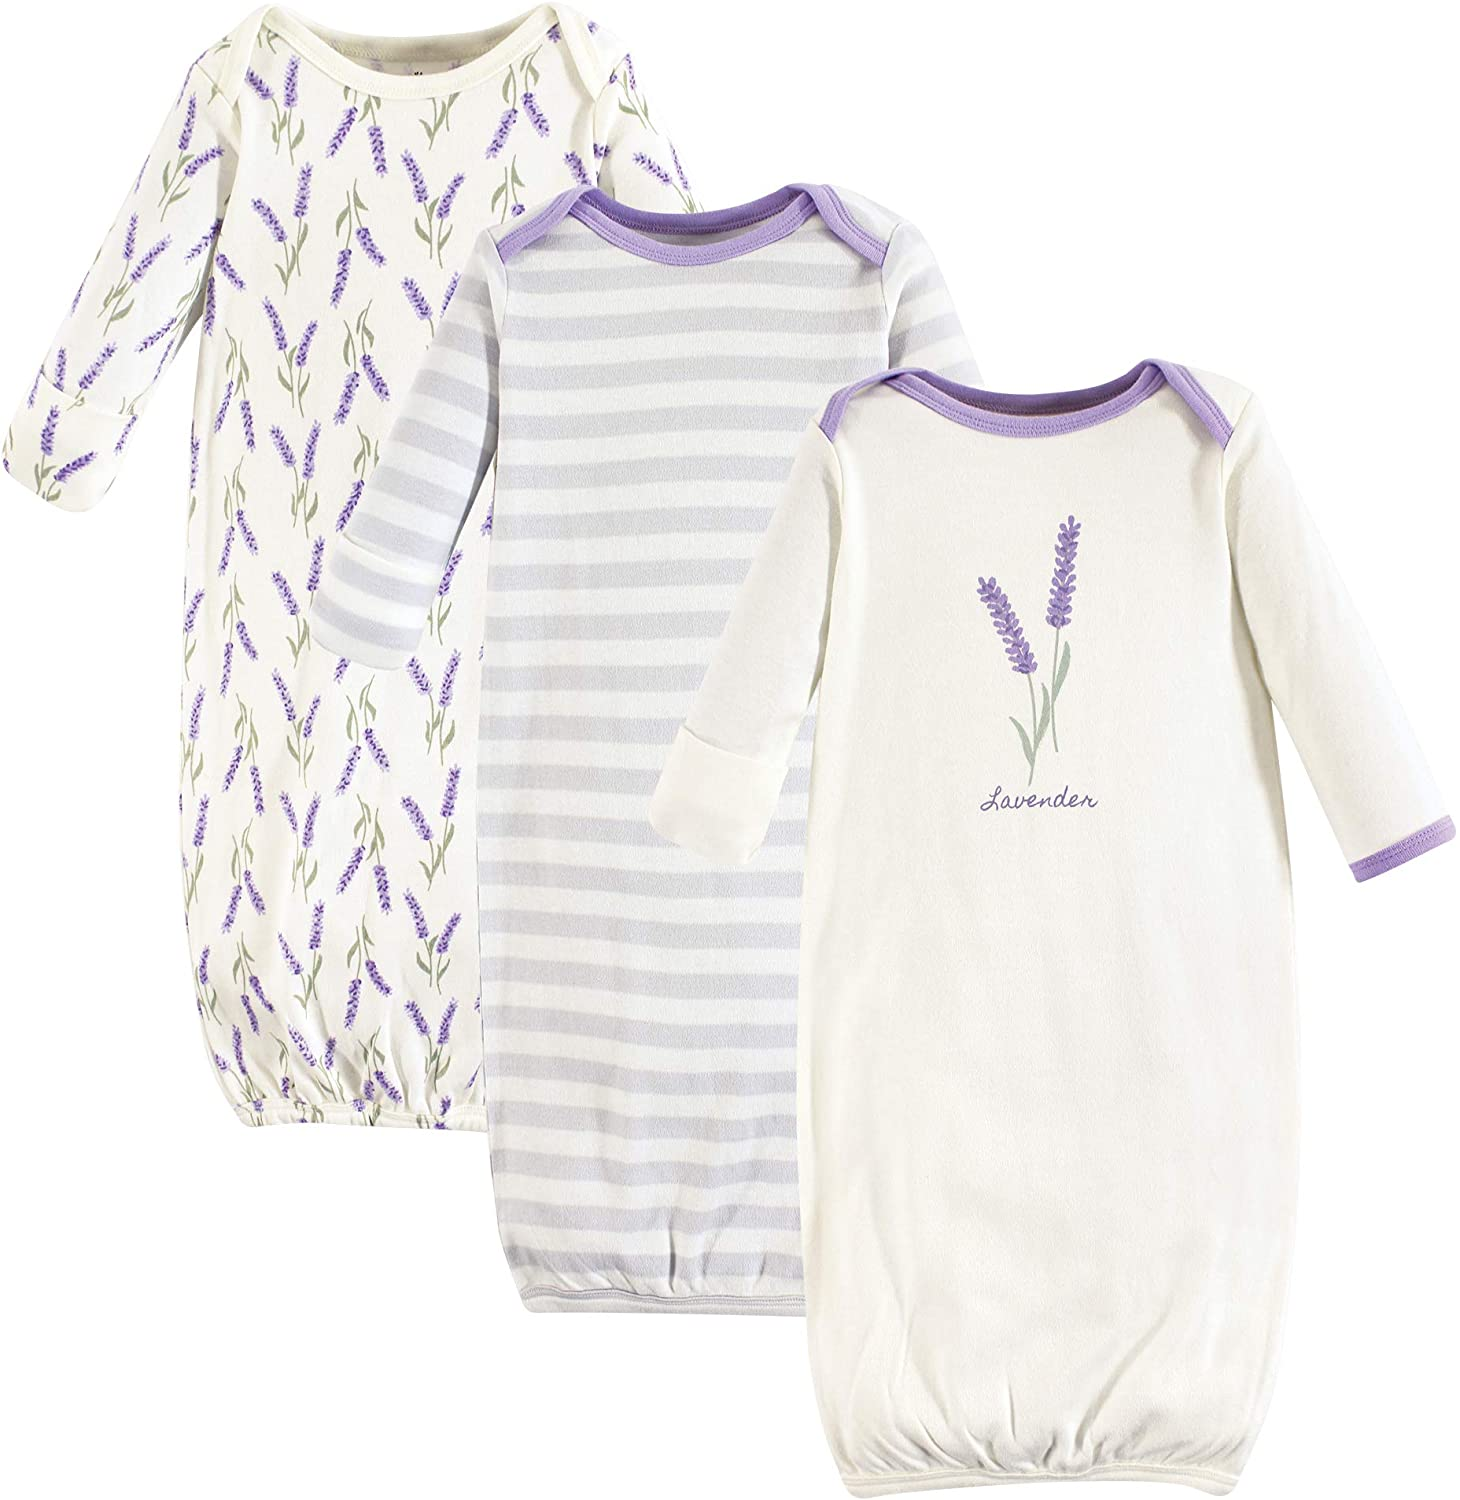 Touched by Nature Baby Organic Cotton Gowns